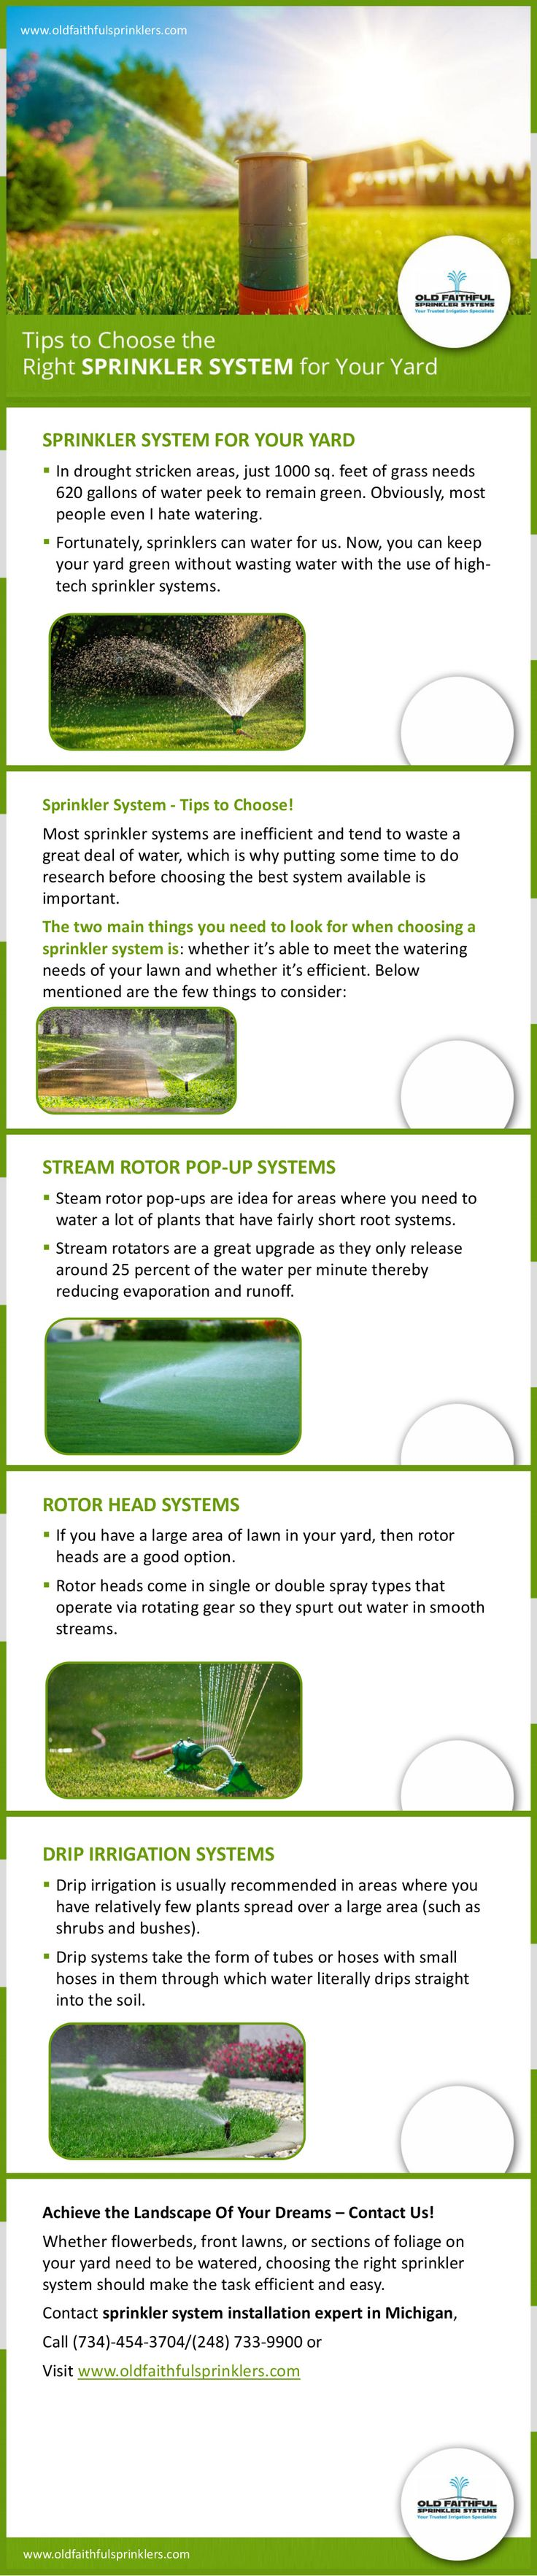 Sprinkler System – Tips to Choose! - A properly installed sprinkler system conserves water by directing it exactly where and when it's needed. Read this guide to choose the right sprinkler system for your yard. For more info, http://www.oldfaithfulsprinklers.com